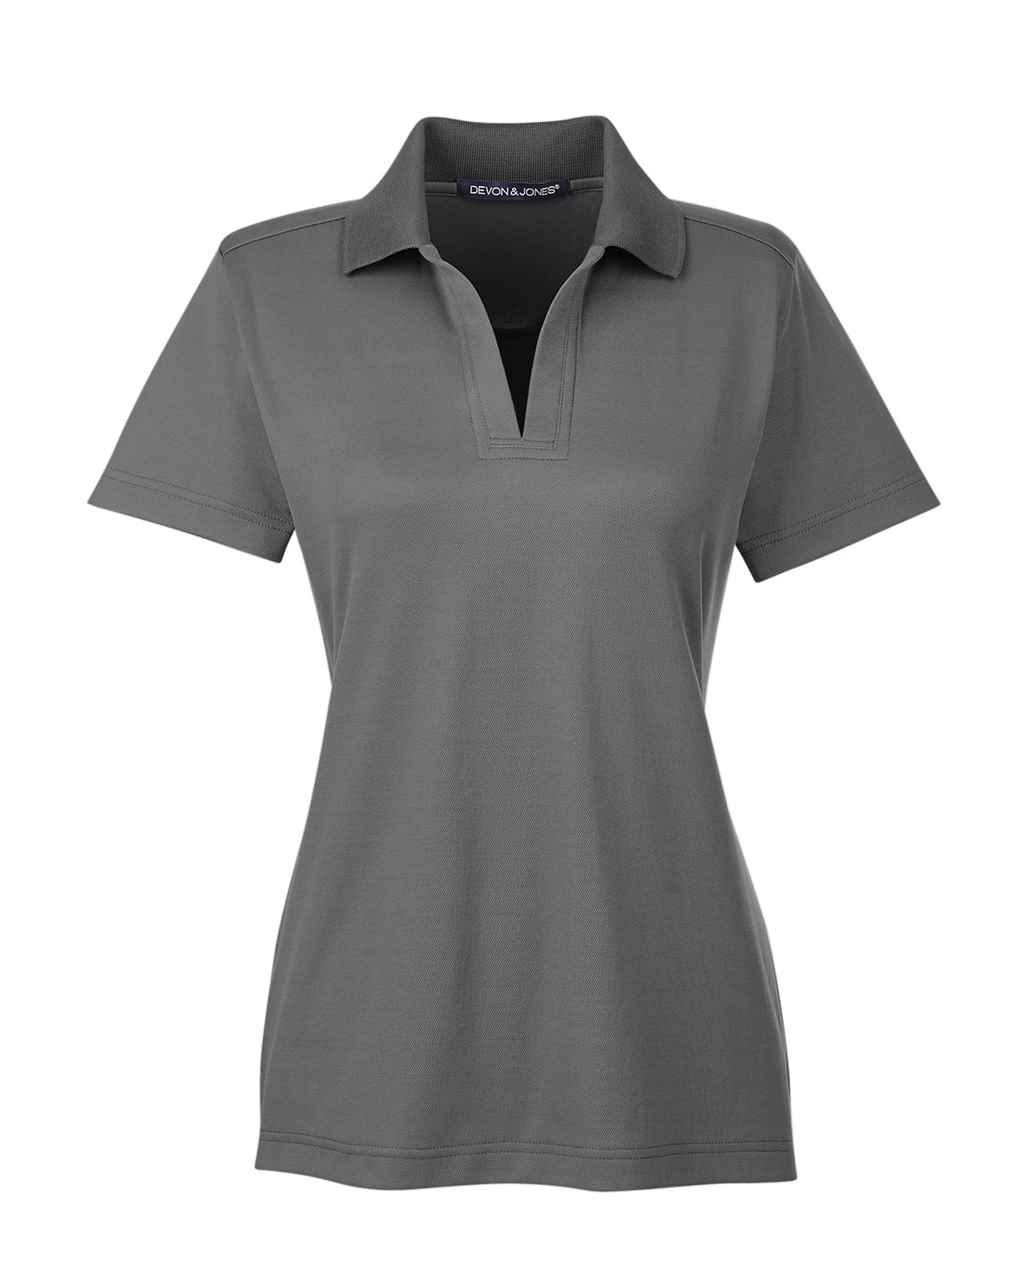 Picture of Crownlux Ladies Performance Plaited Short Sleeve Polo